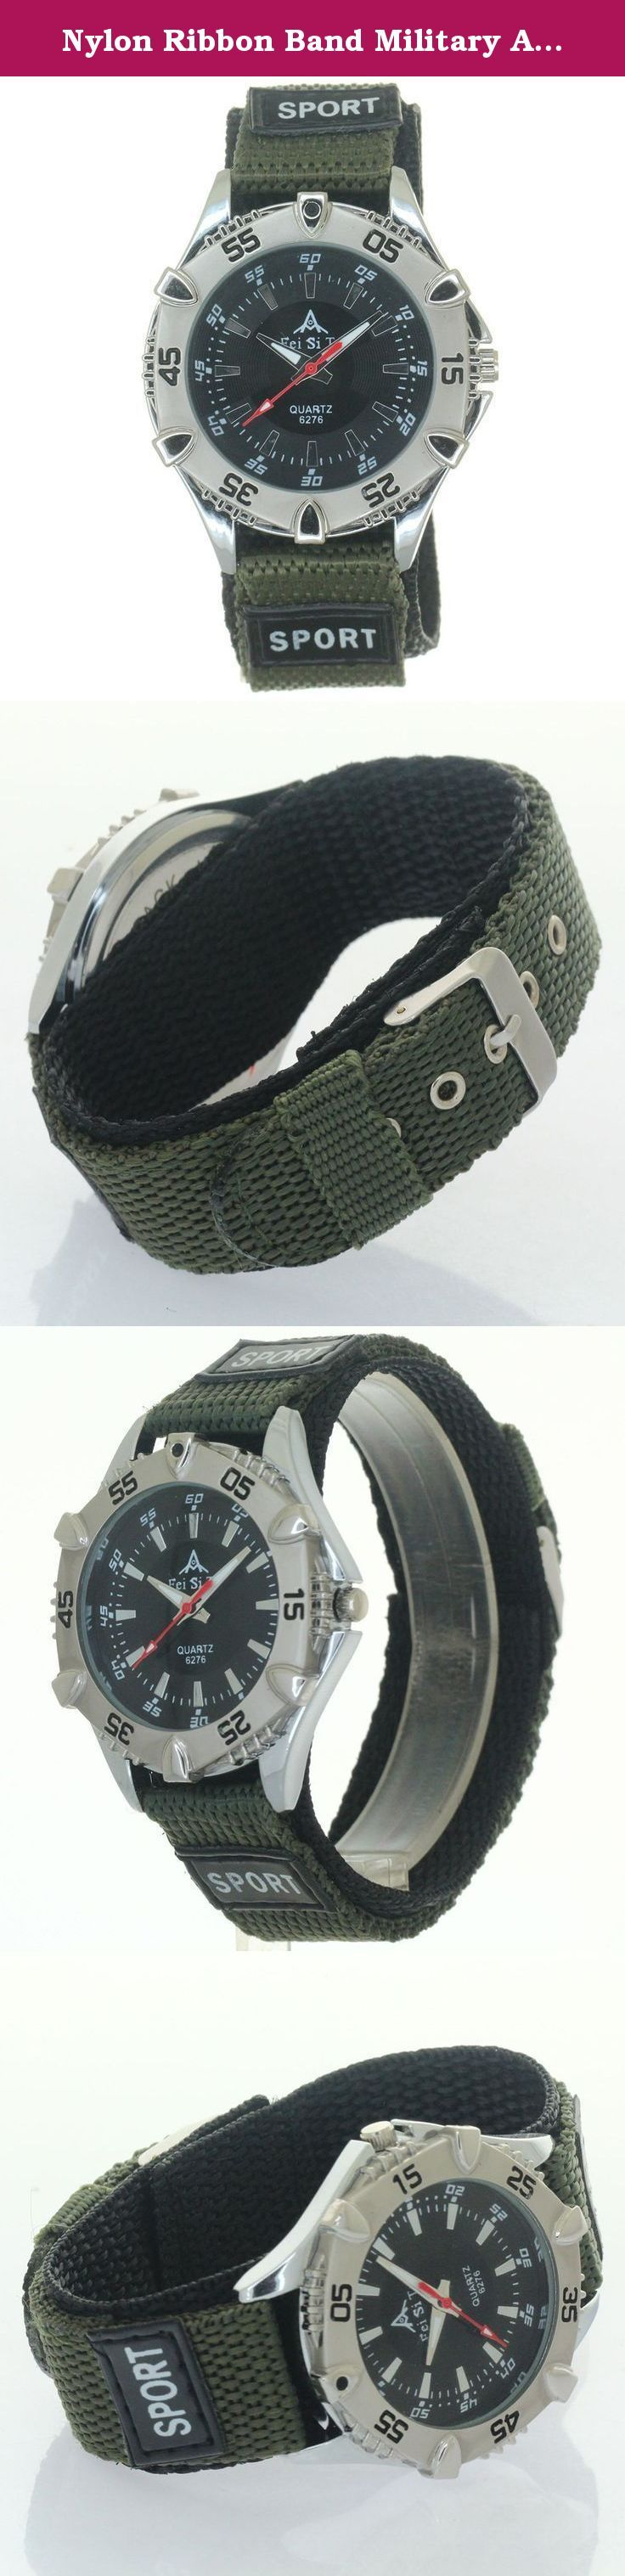 Nylon Ribbon Band Military Army Velcro Fastener Polished Buckle Sport Quartz Unisex Bezel Wristwatch. Double Layer Nylon Watch Strap Velcro Fastener Polished Buckle Functional uni-direction bezel crown Decorate Numeral Dial Japan Precision Movement Inside. Quartz Wristwatch. Short straps not fit strong big wrists. Men Women Boys Girls Kids Students all Fits.